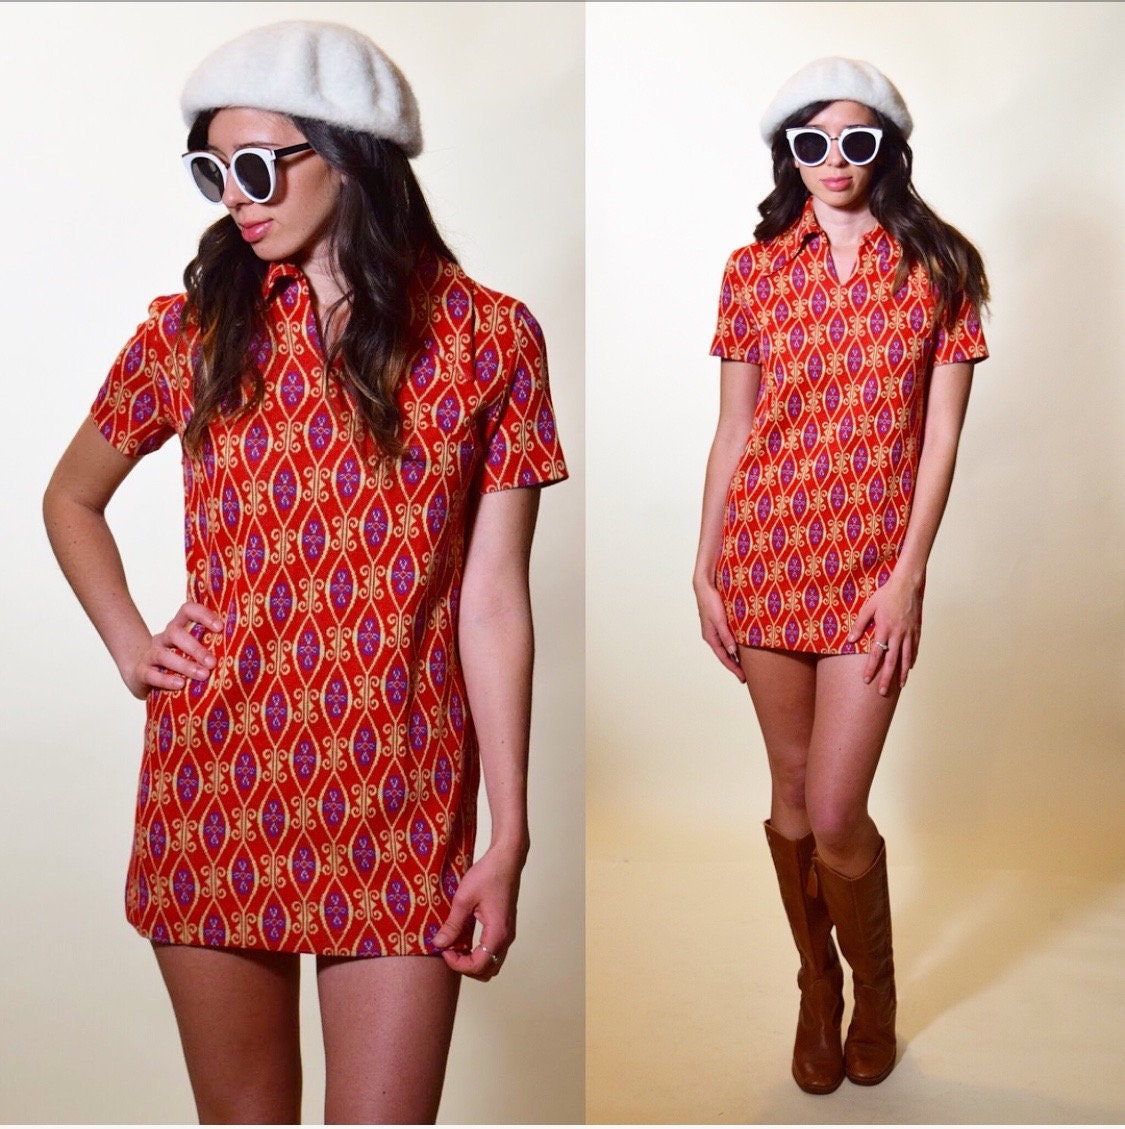 f0965b64fd8 Authentic vintage 1960s/70s classic psychedelic hippie patterned ...